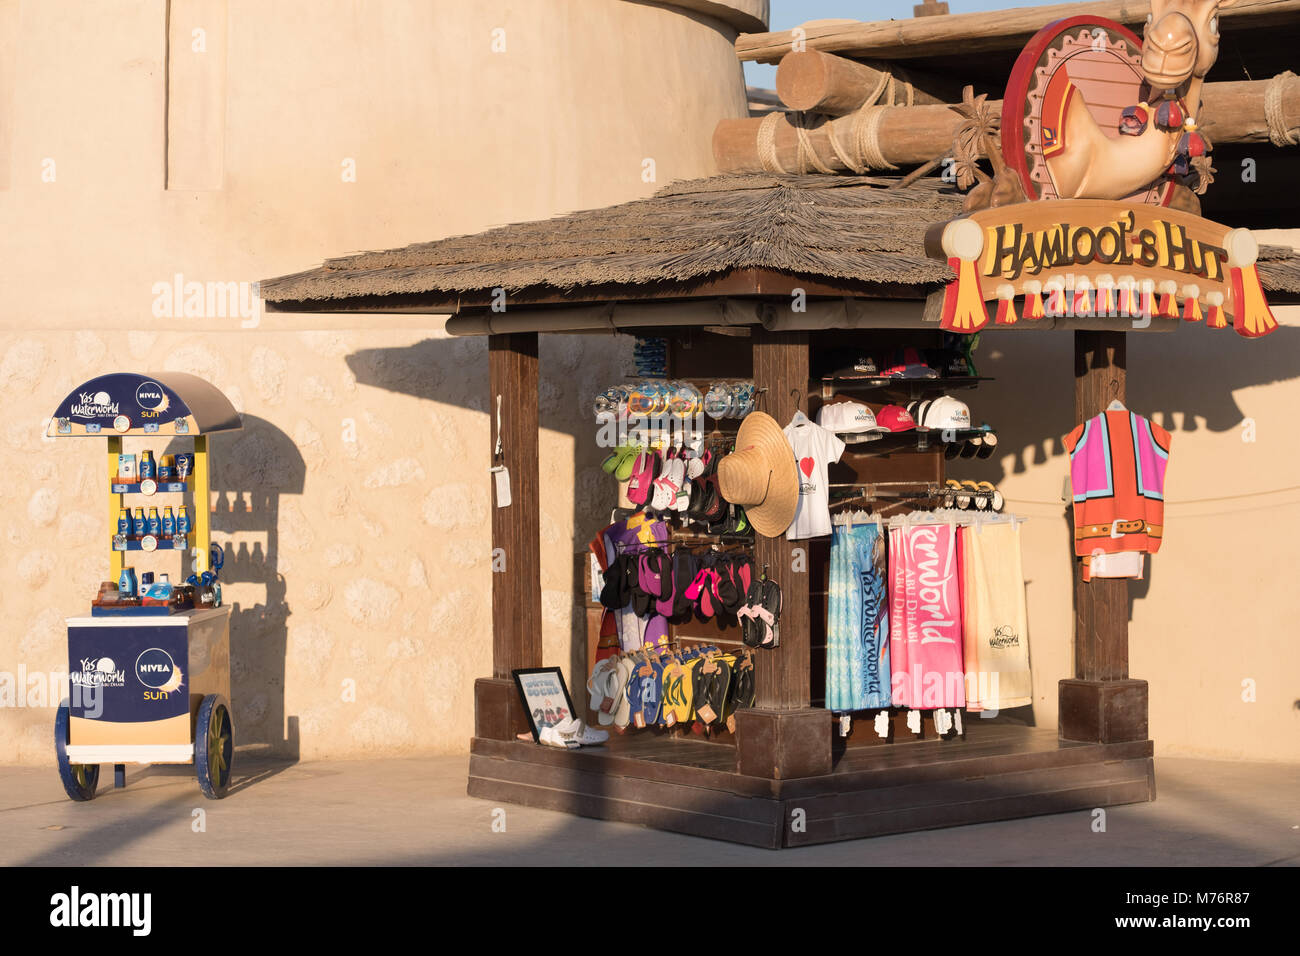 Hamlool's Hut is a small store / kiosk at the entrance of